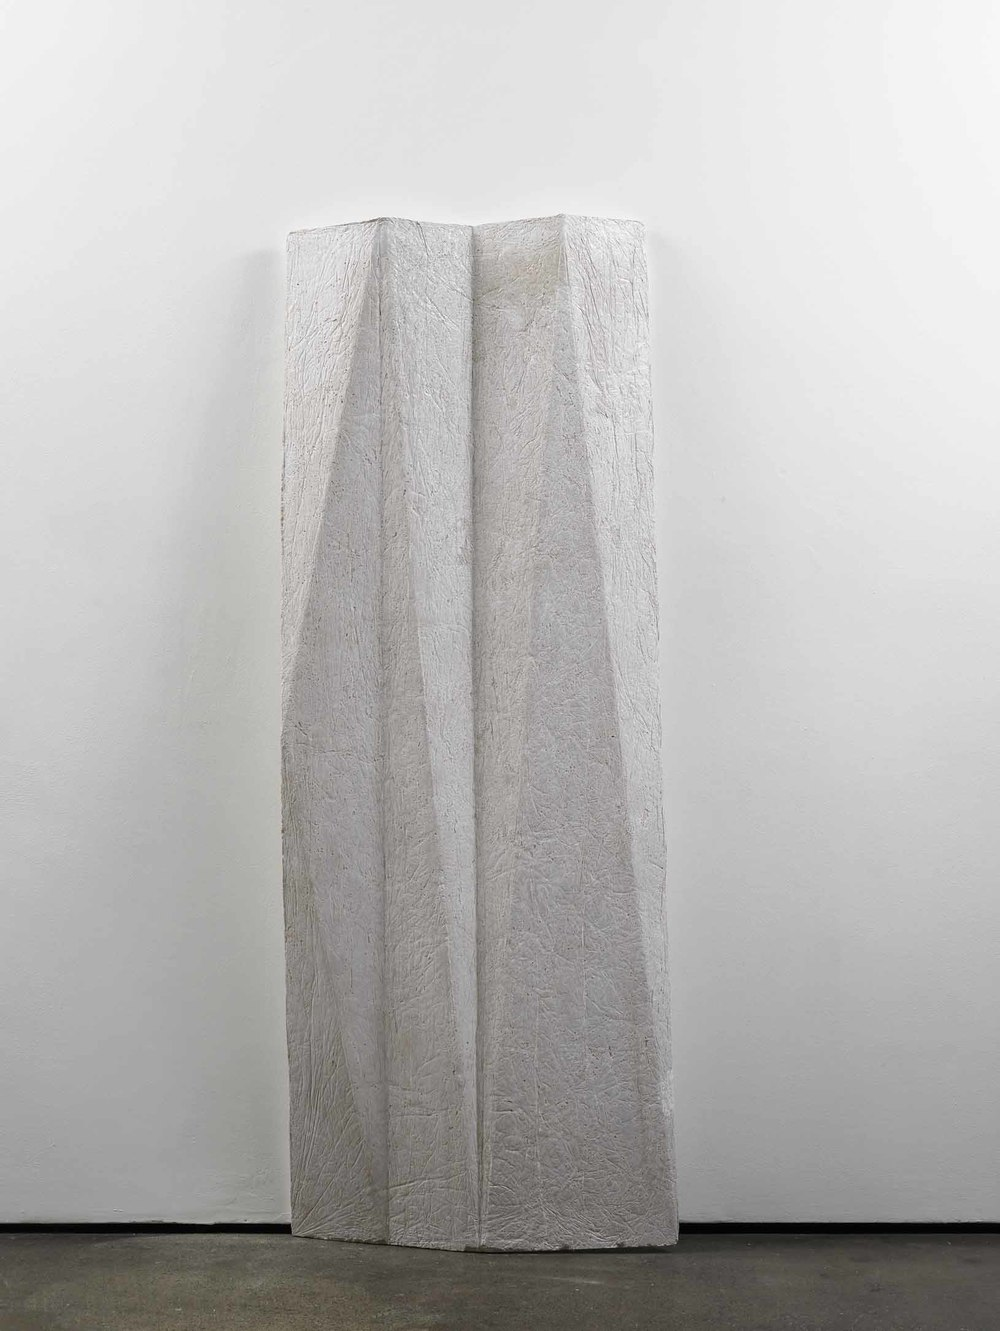 cope (working title)   2011   Concrete   200 x 76 x 13 cm / 78.7 x 30 x 5 in